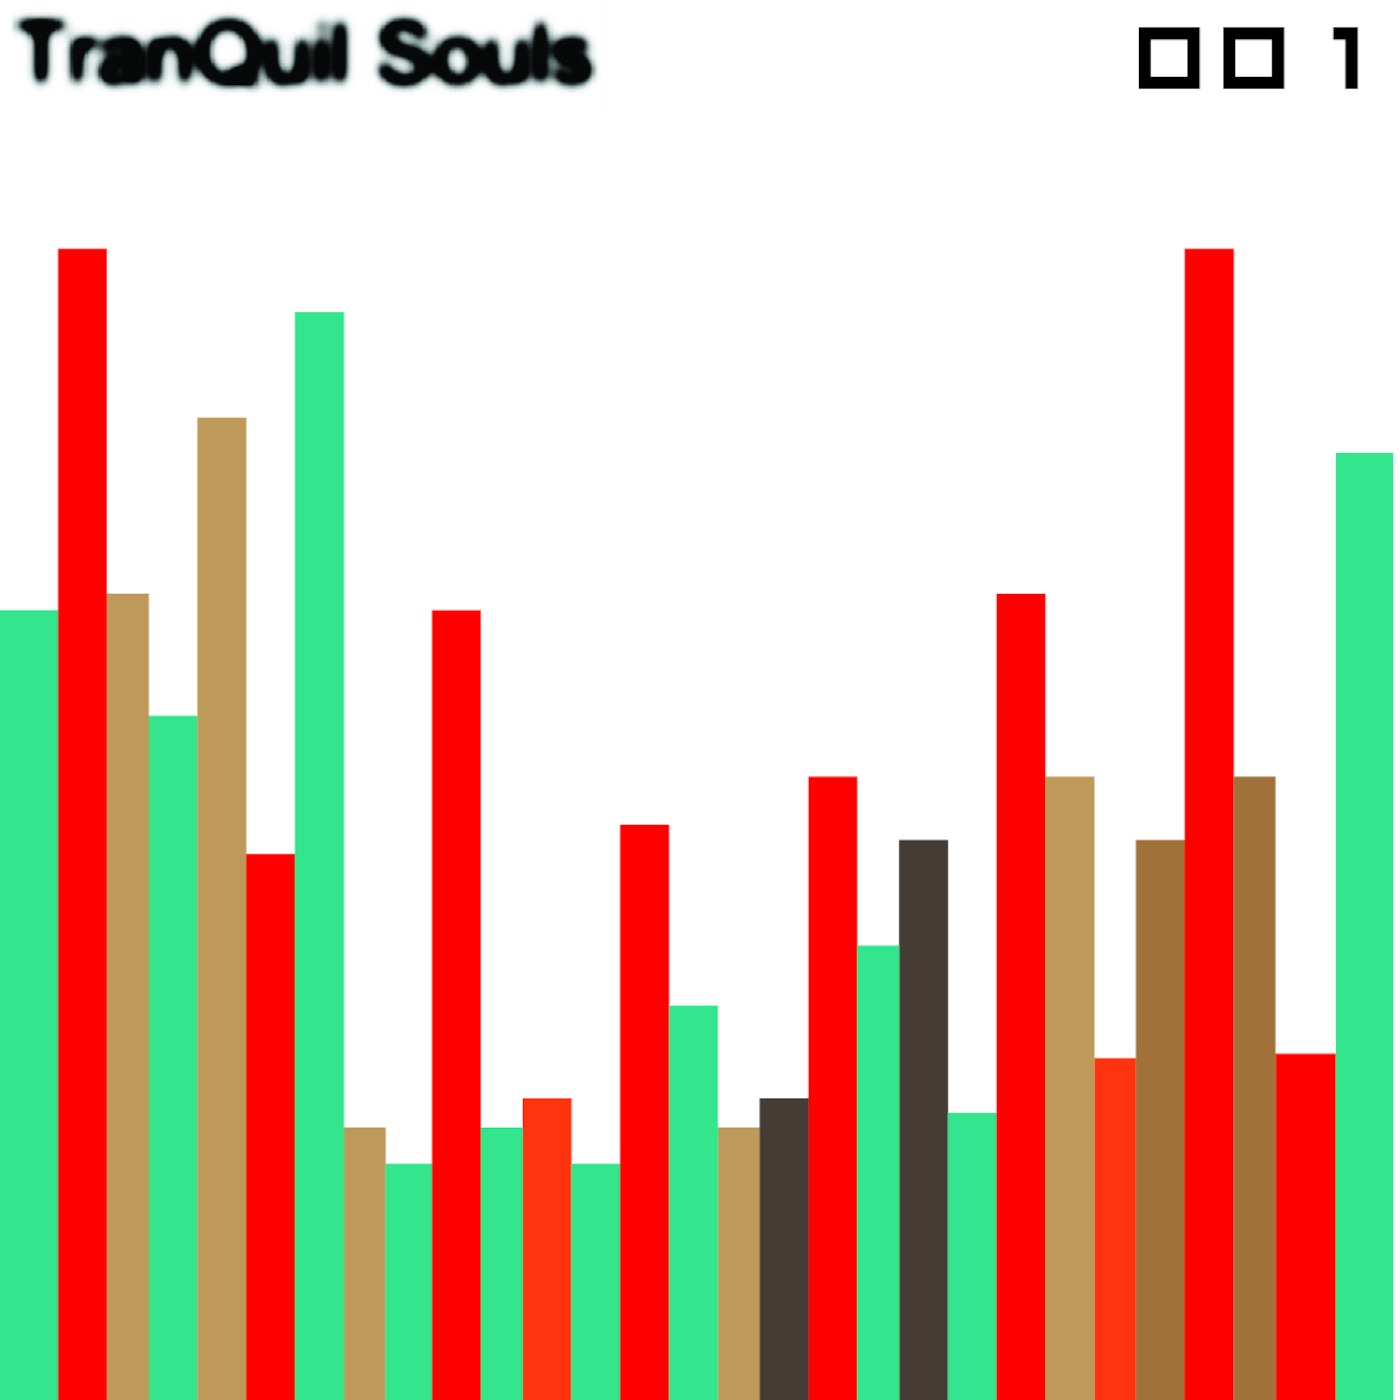 TranQuil Souls' Podcast